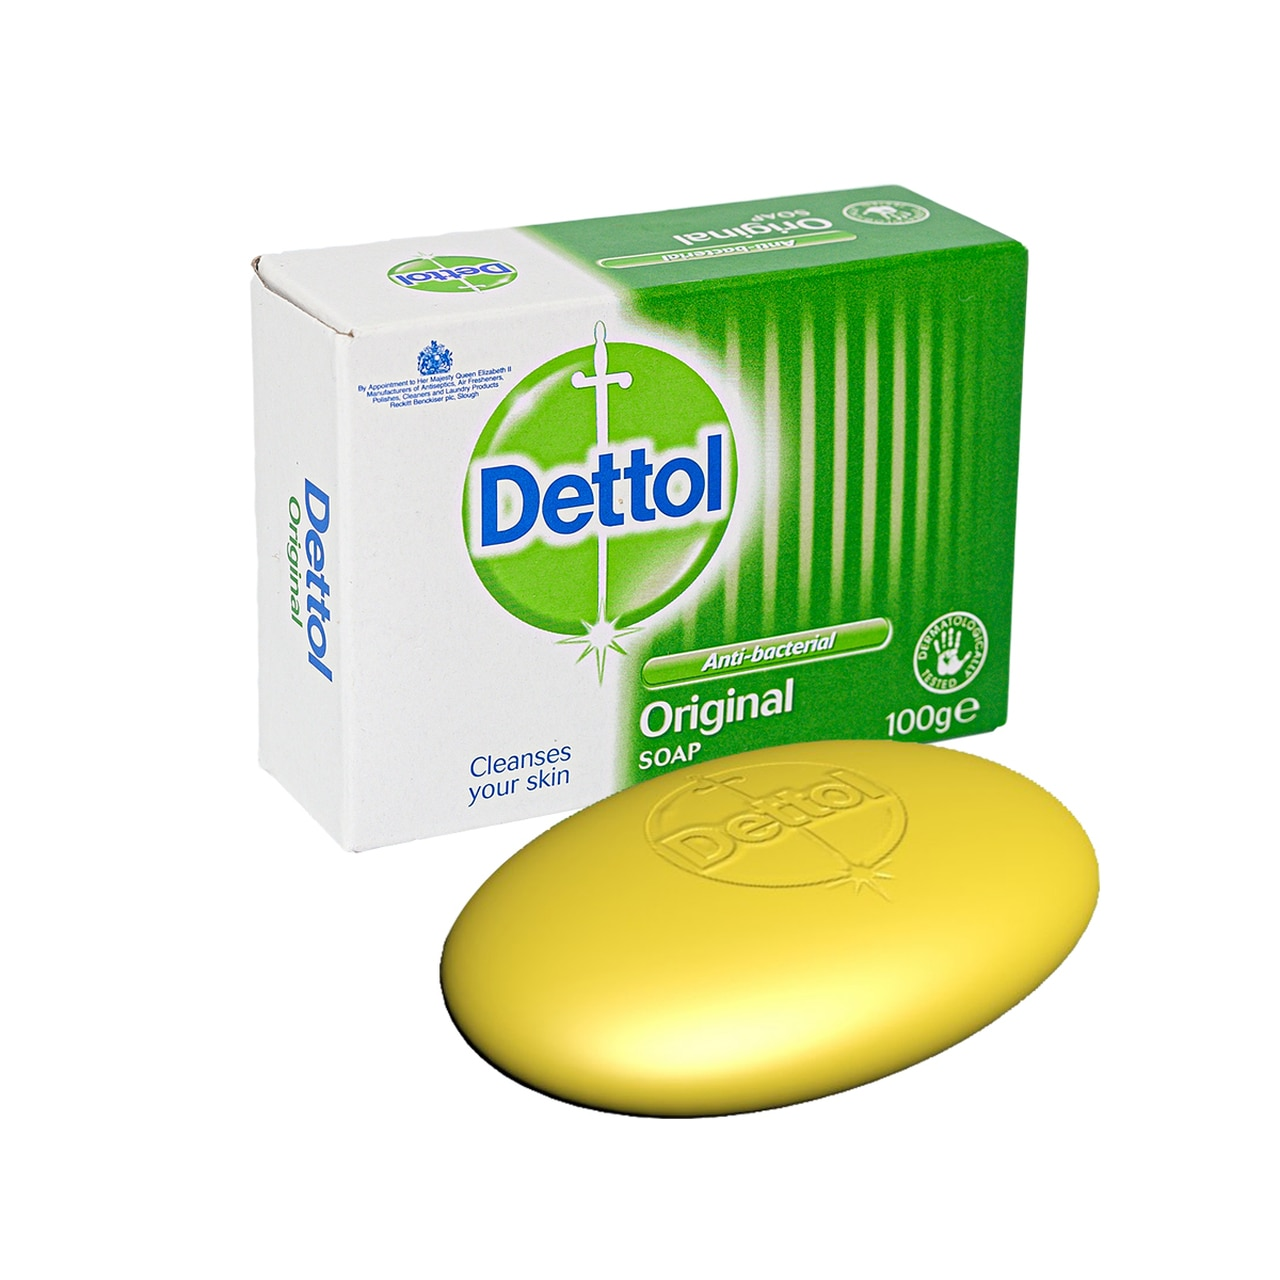 DETTOL ANTI BACTERIAL ORIGINAL SOAP TWIN